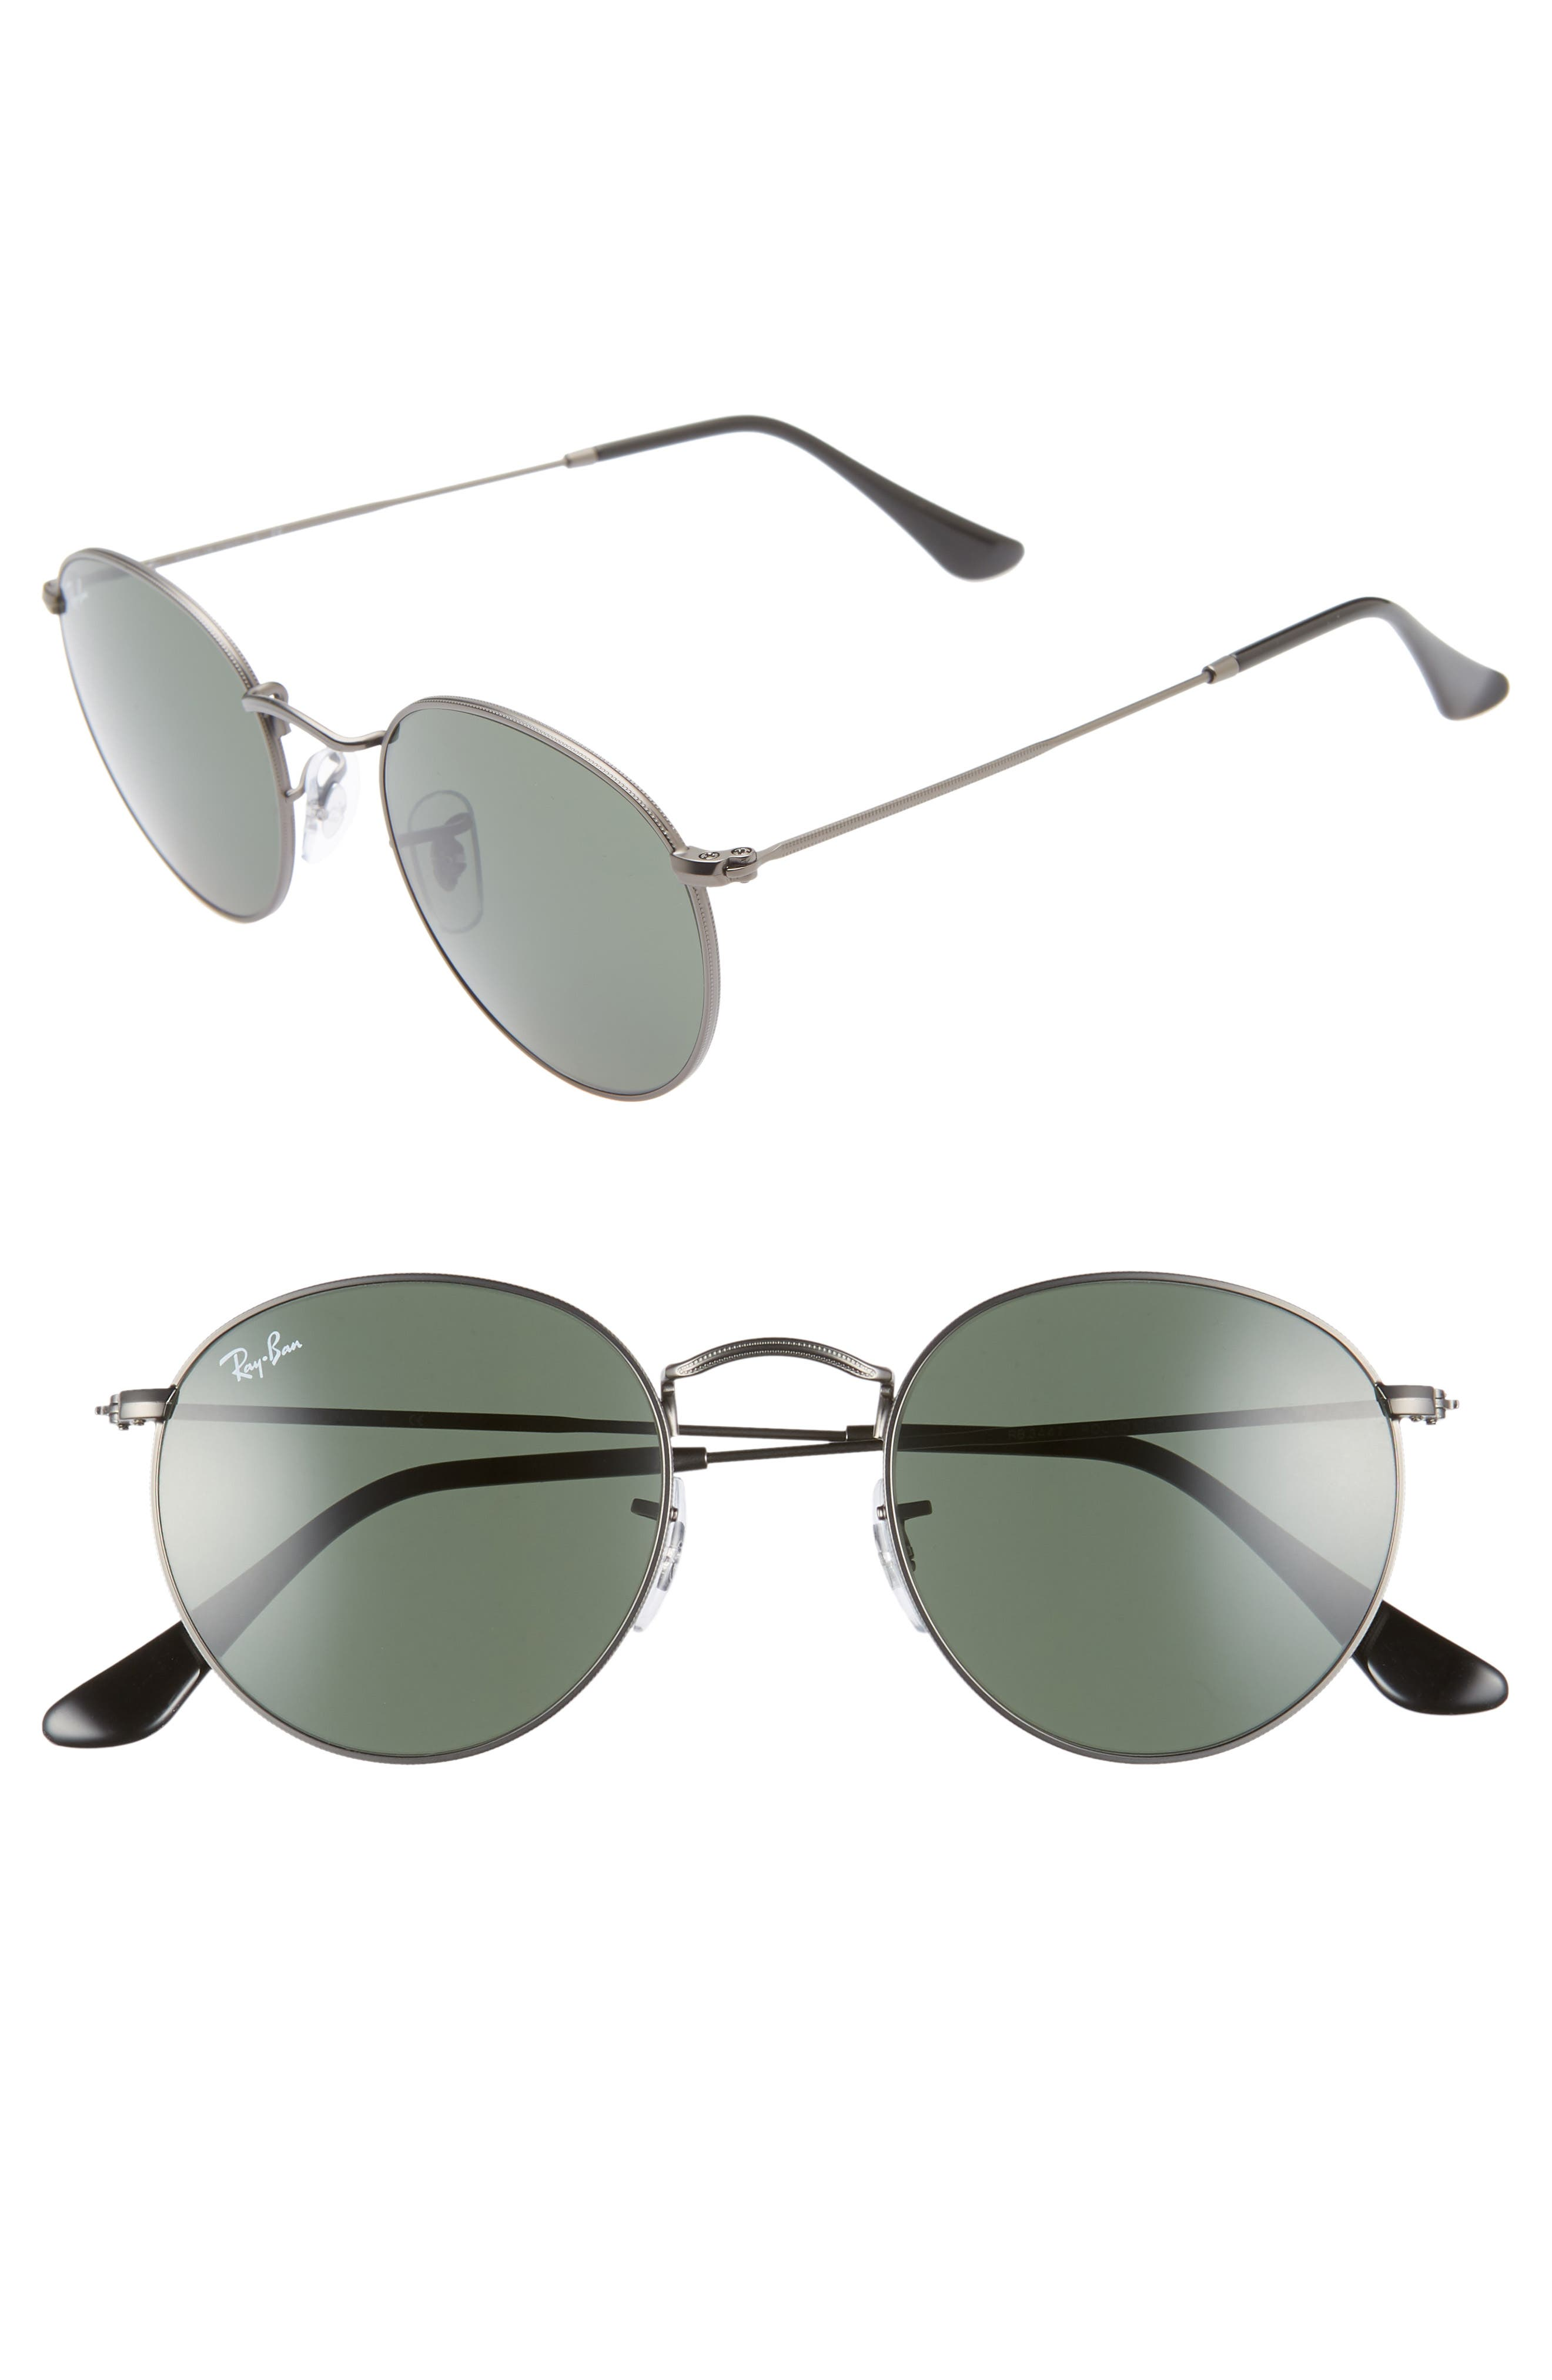 Ray-Ban Icons 50Mm Round Metal Sunglasses - Gunmetal/ Green Solid